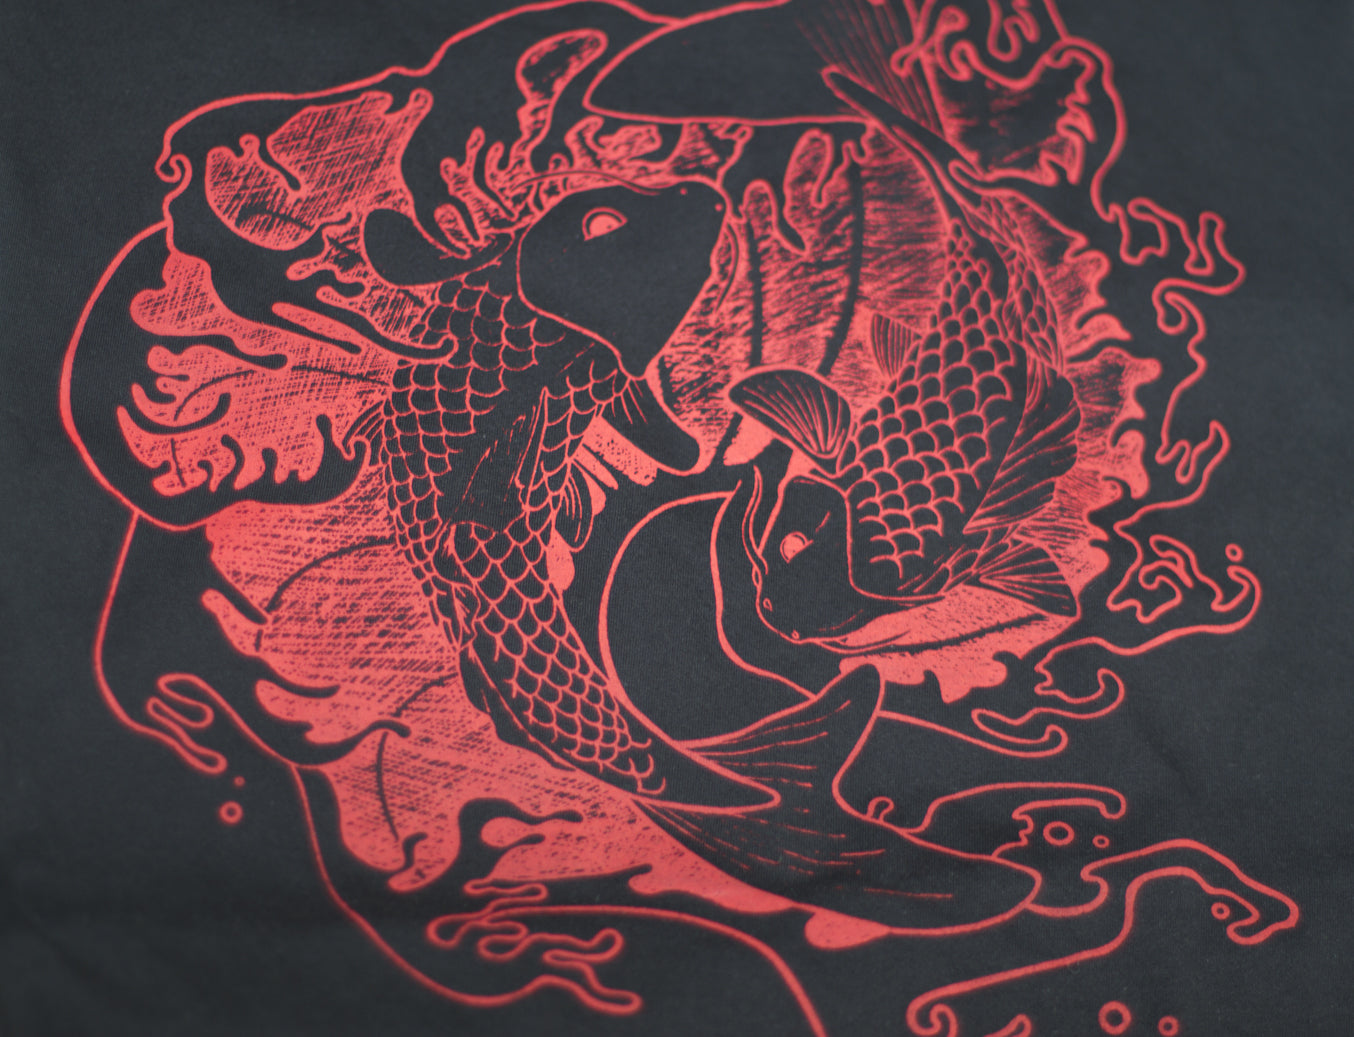 Black Japanese Fighting Koi Fish, Waves Graphic T-Shirt Dress - Yay for Fidget Art!